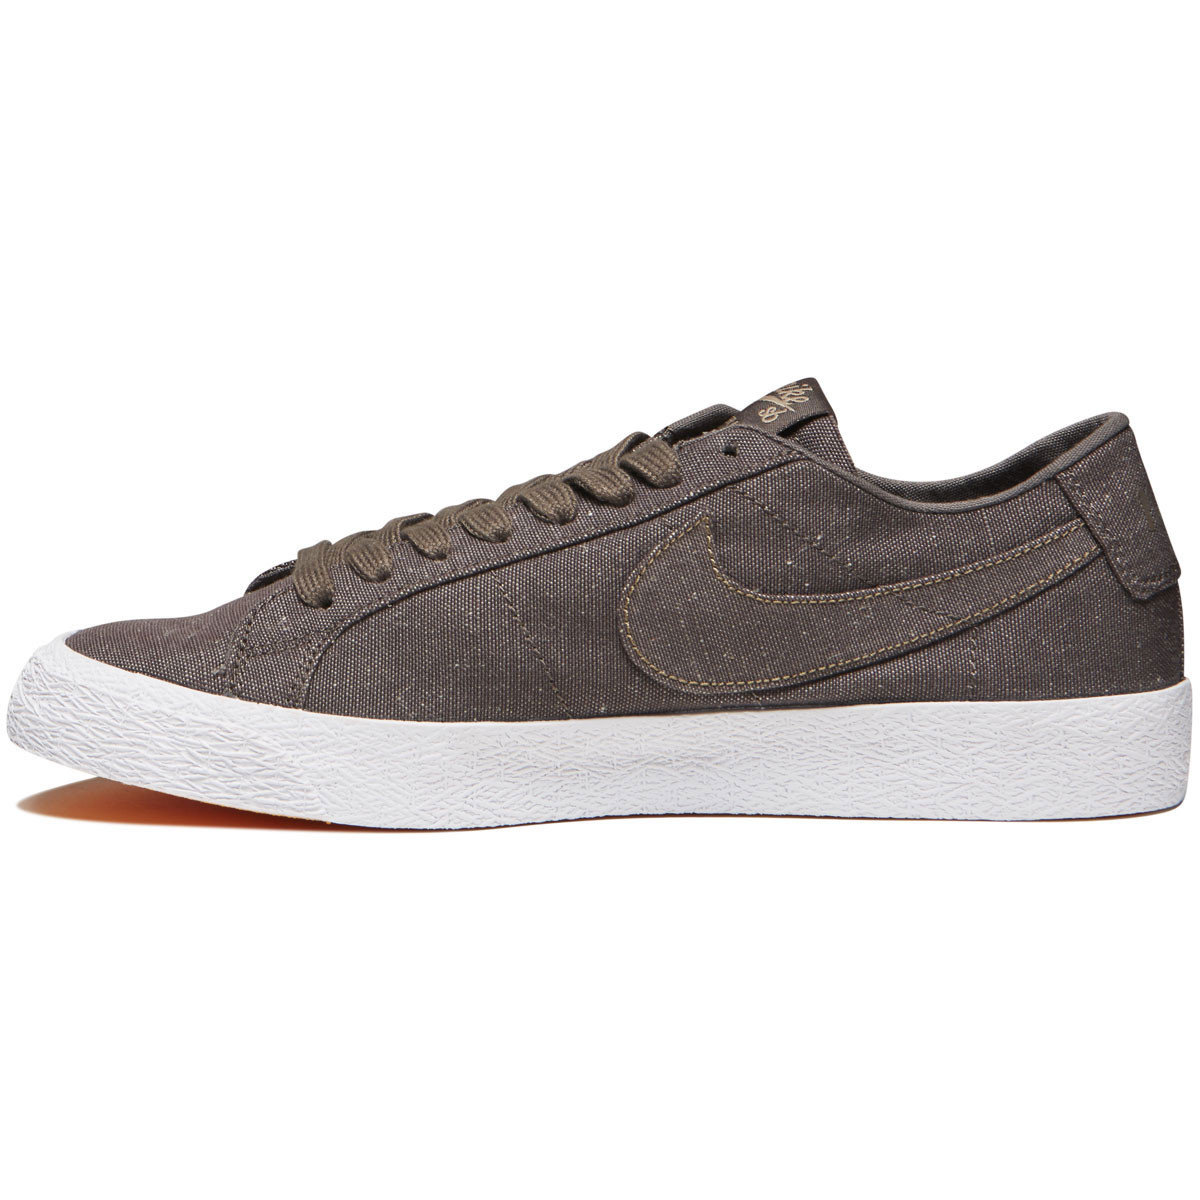 watch 544ae 92521 Nike SB Zoom Blazer Low Canvas Deconstructed Shoes